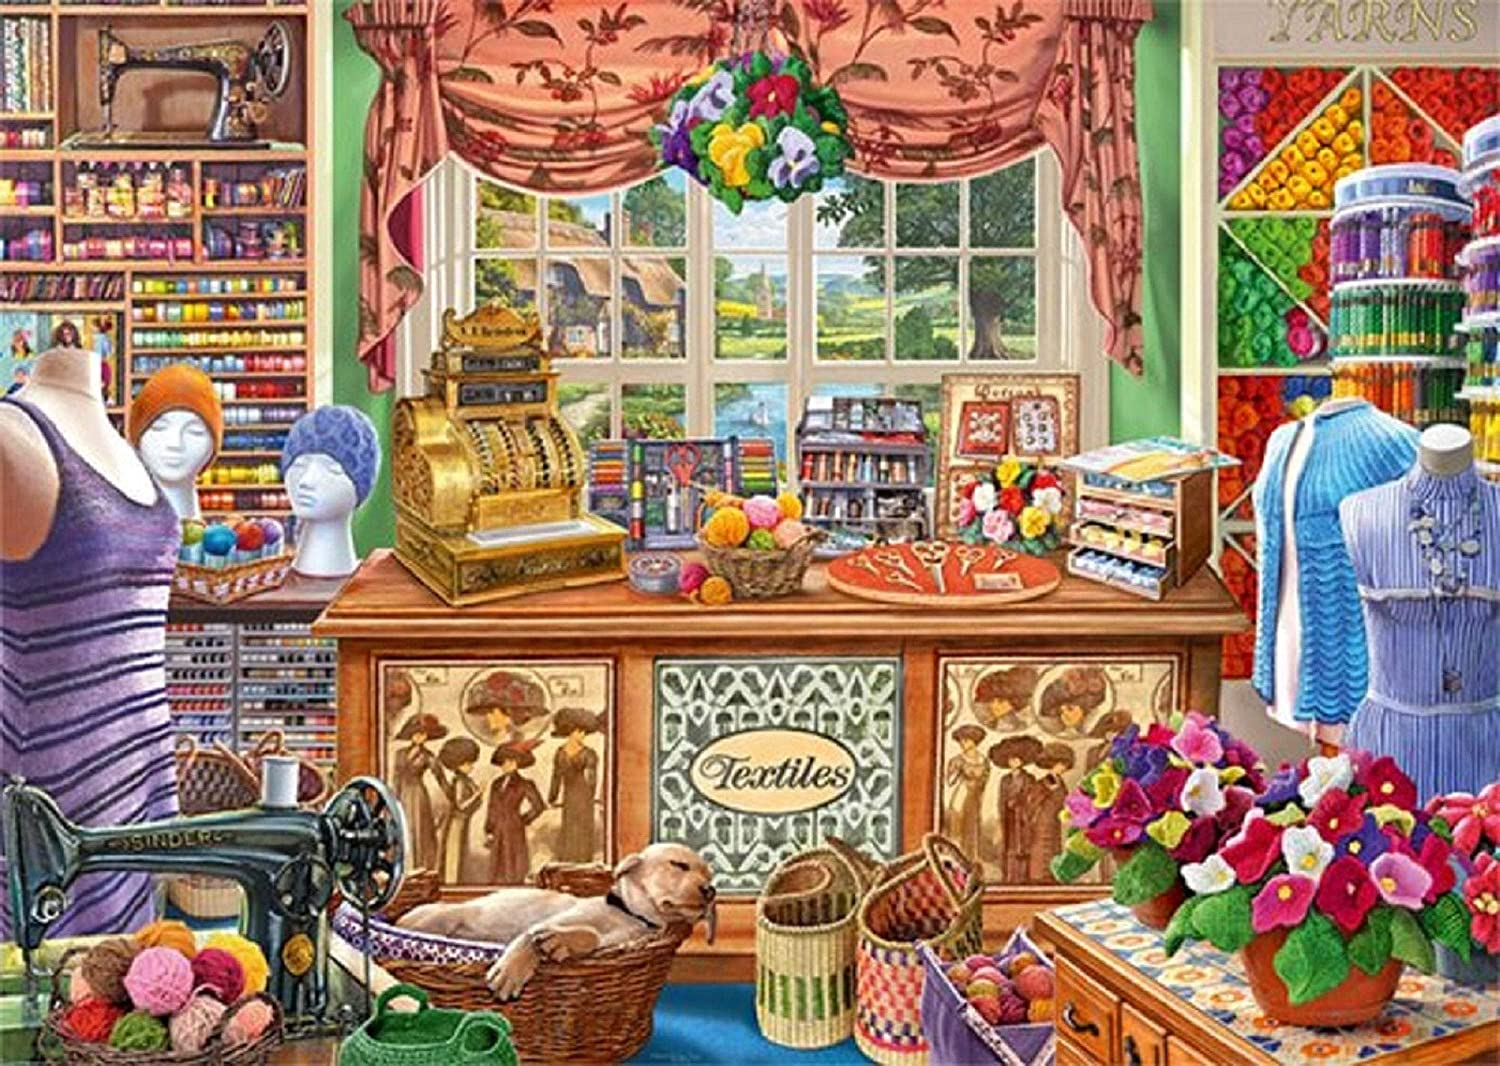 Falcon de Luxe Puzzles for Adult Kids 1000 Piece Jigsaw Puzzle, The Haberdasher's Shoppe, Jumbo 11256, Puzzle & Fun Fact Poster & Decompressing Fun Family Game